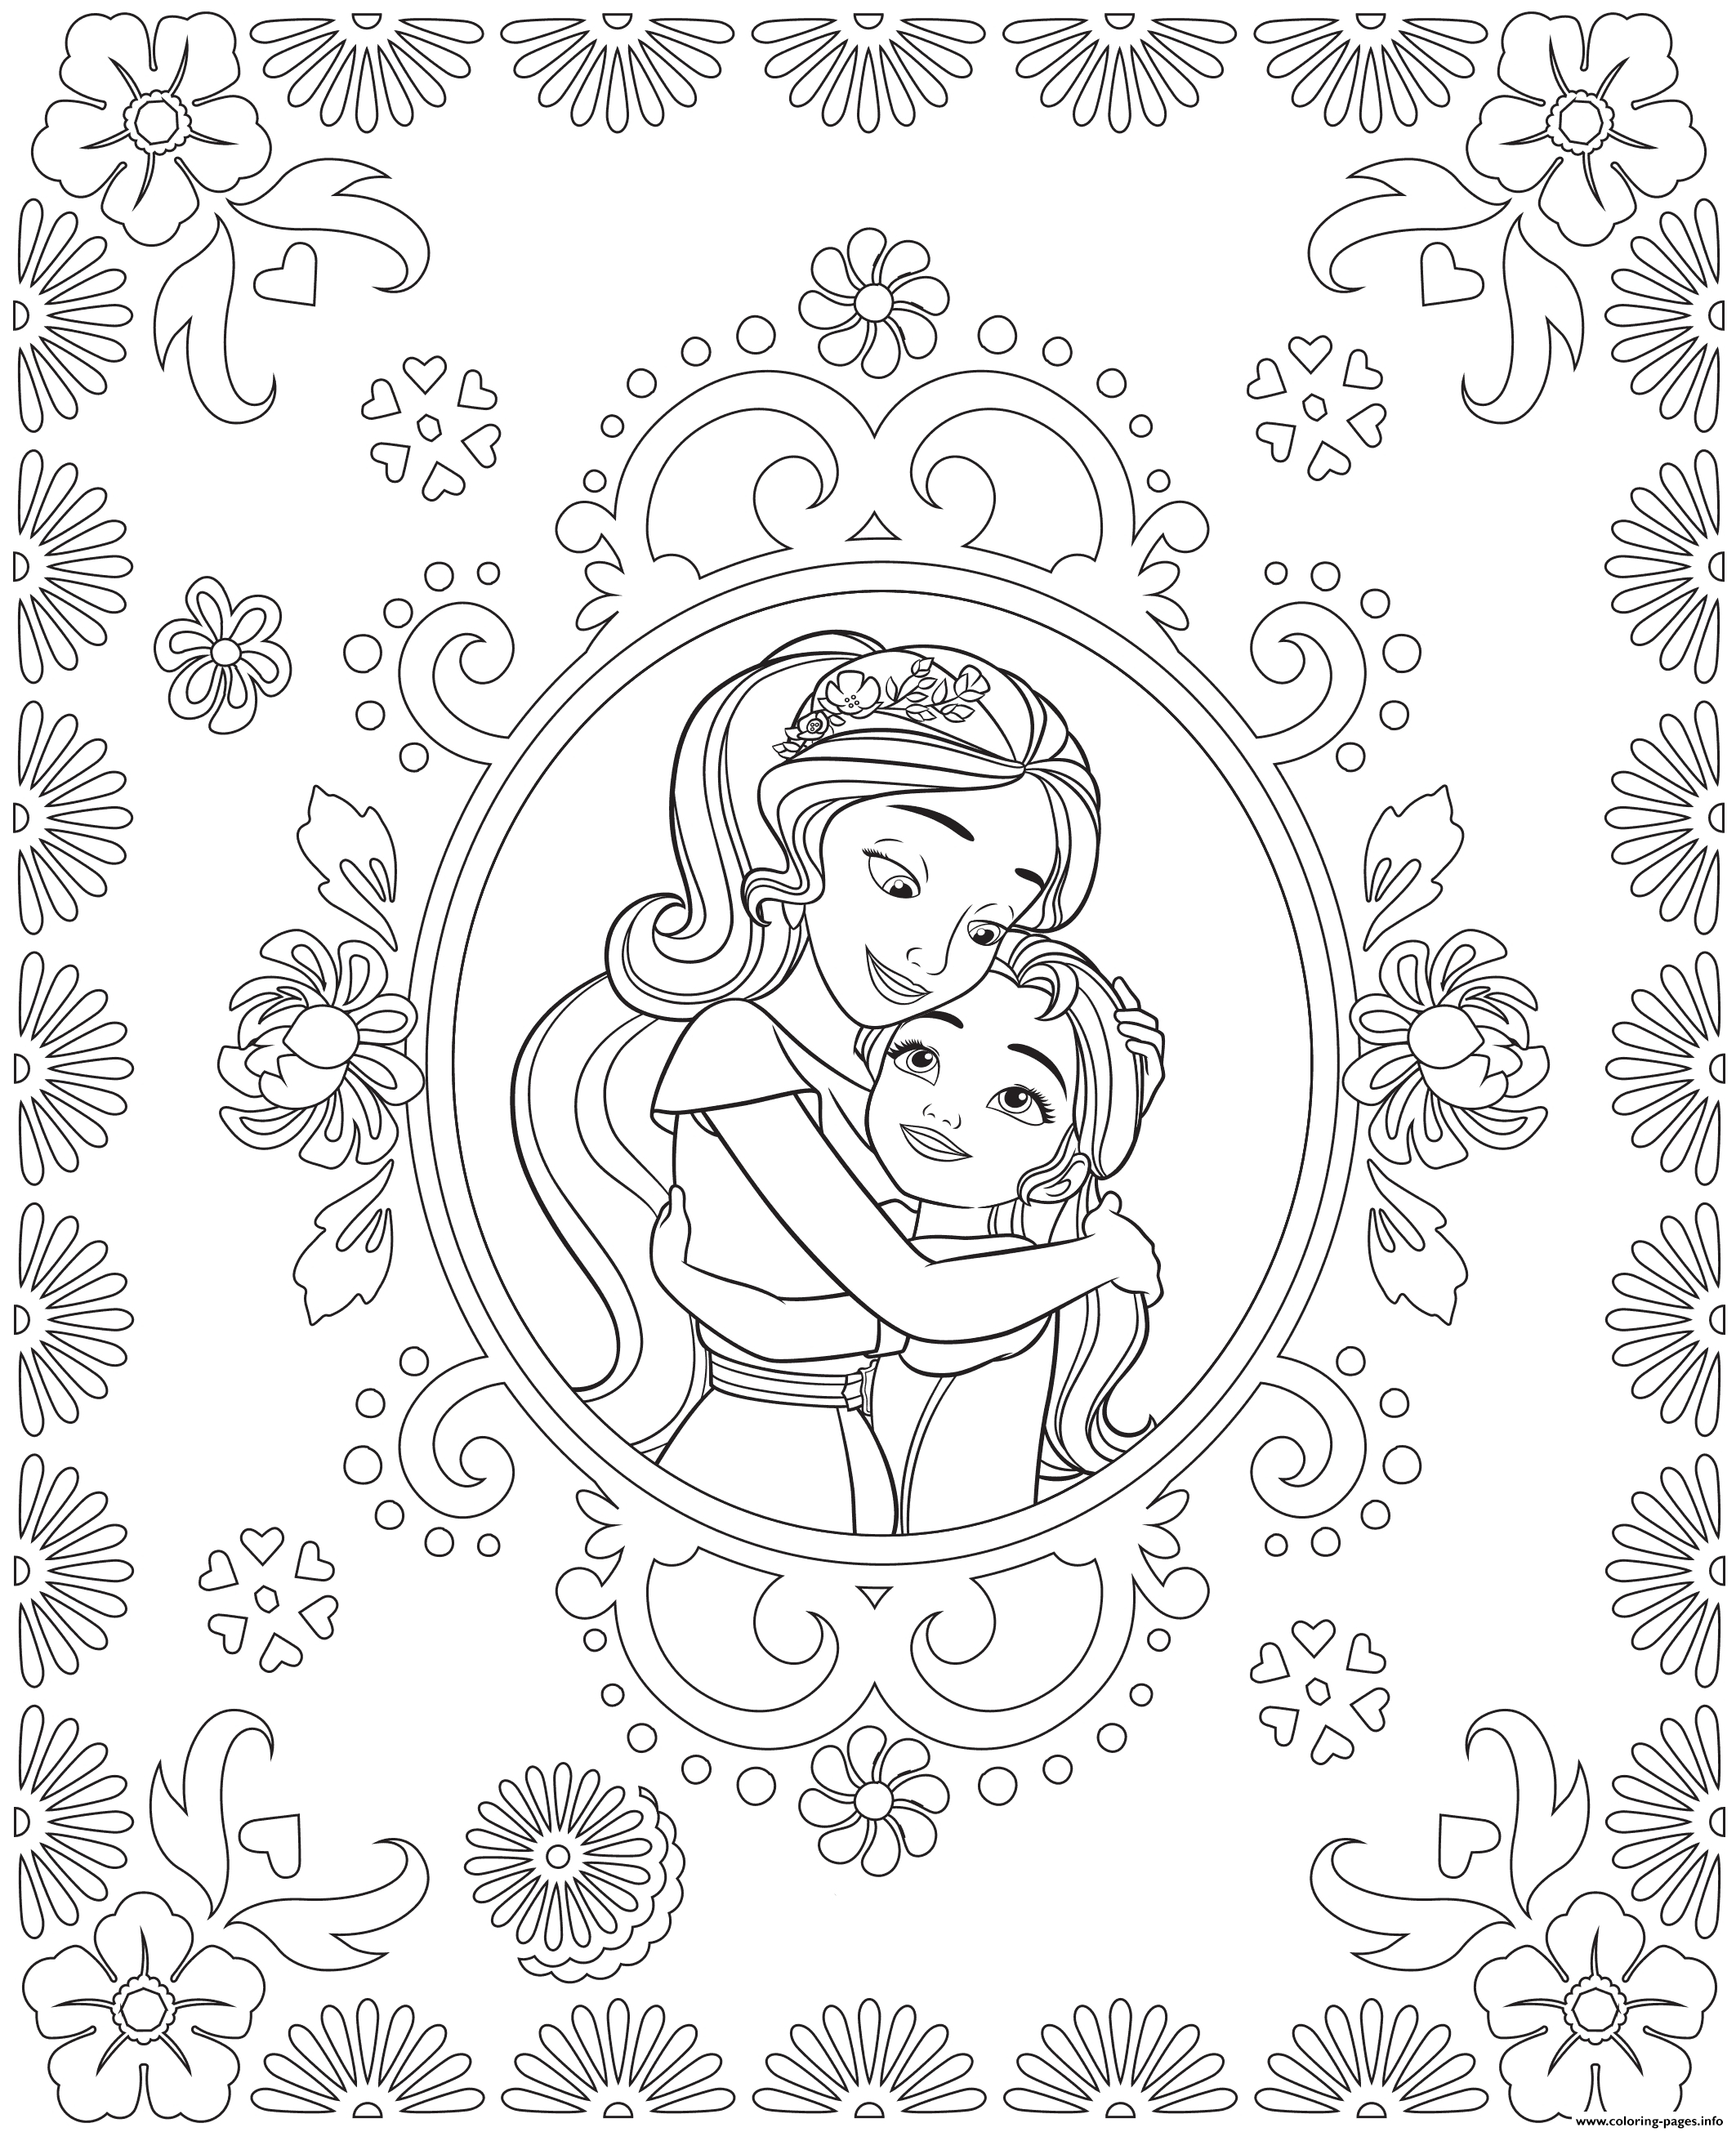 elena of avalor coloring pages to print Download-Coloring Sheets Detail 5-t